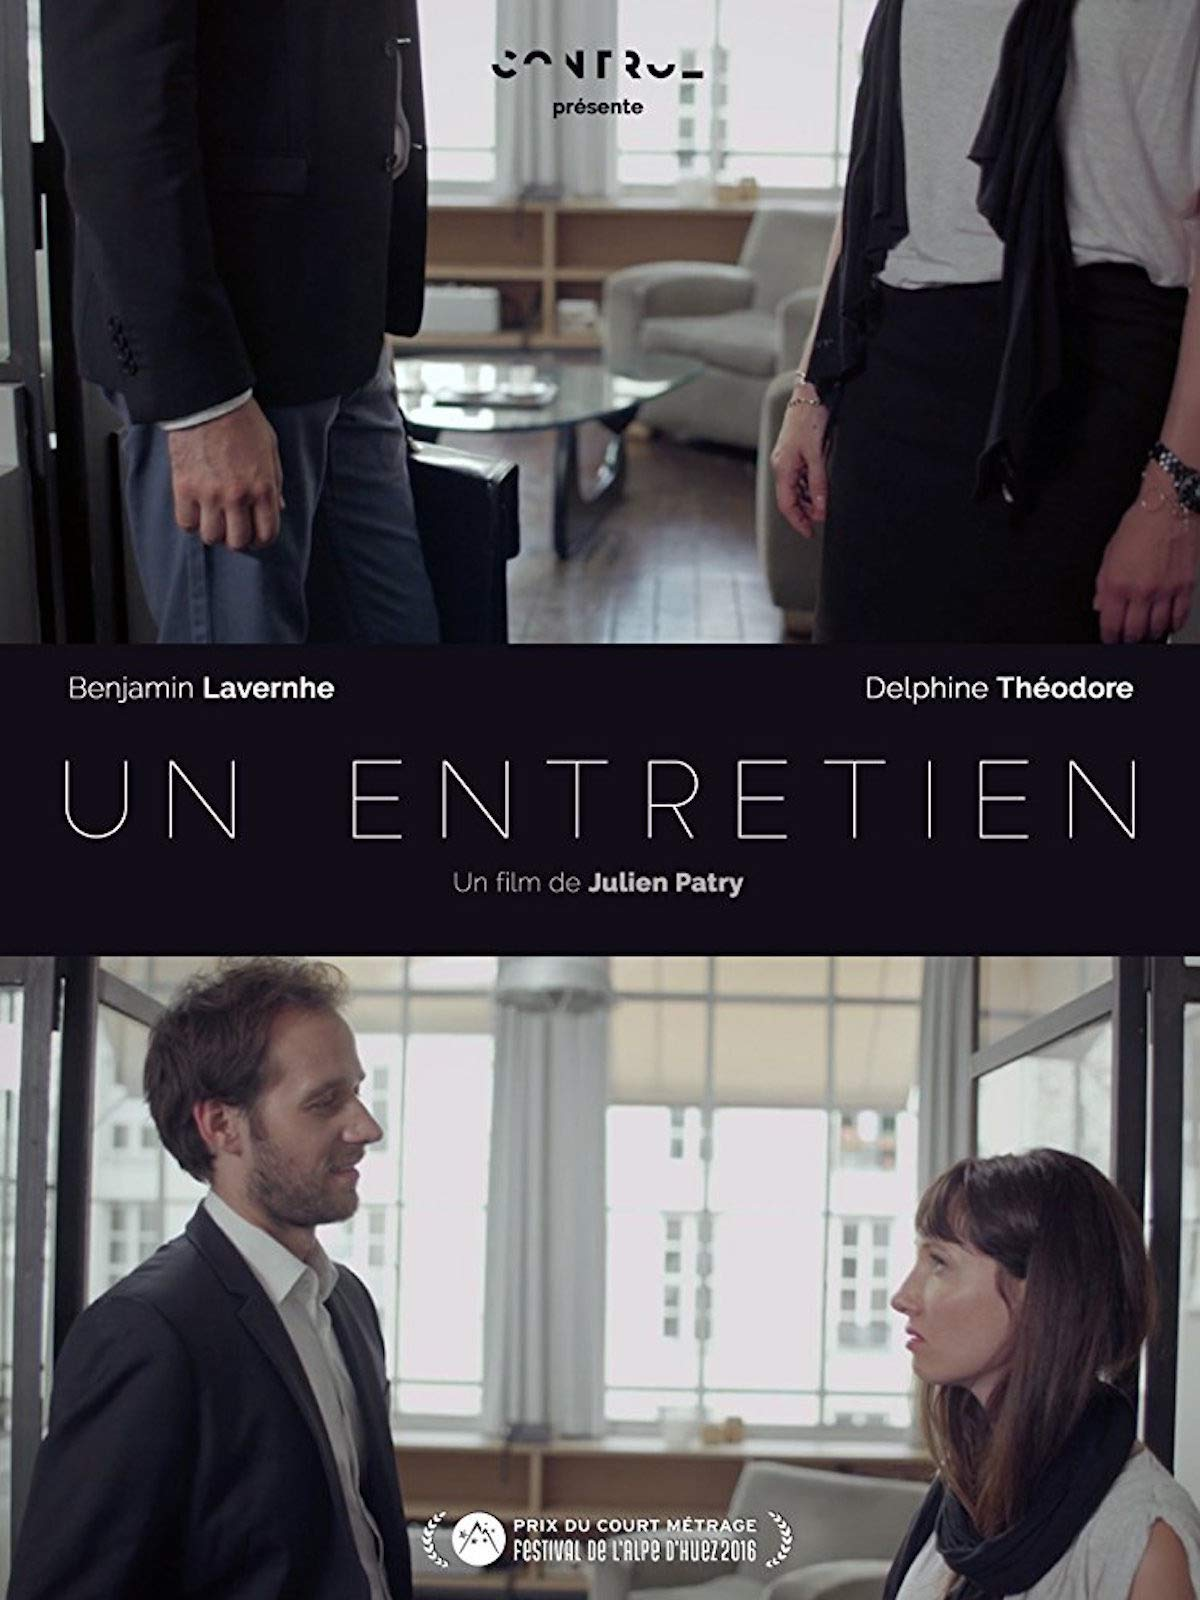 An Interview (Un Entretien)